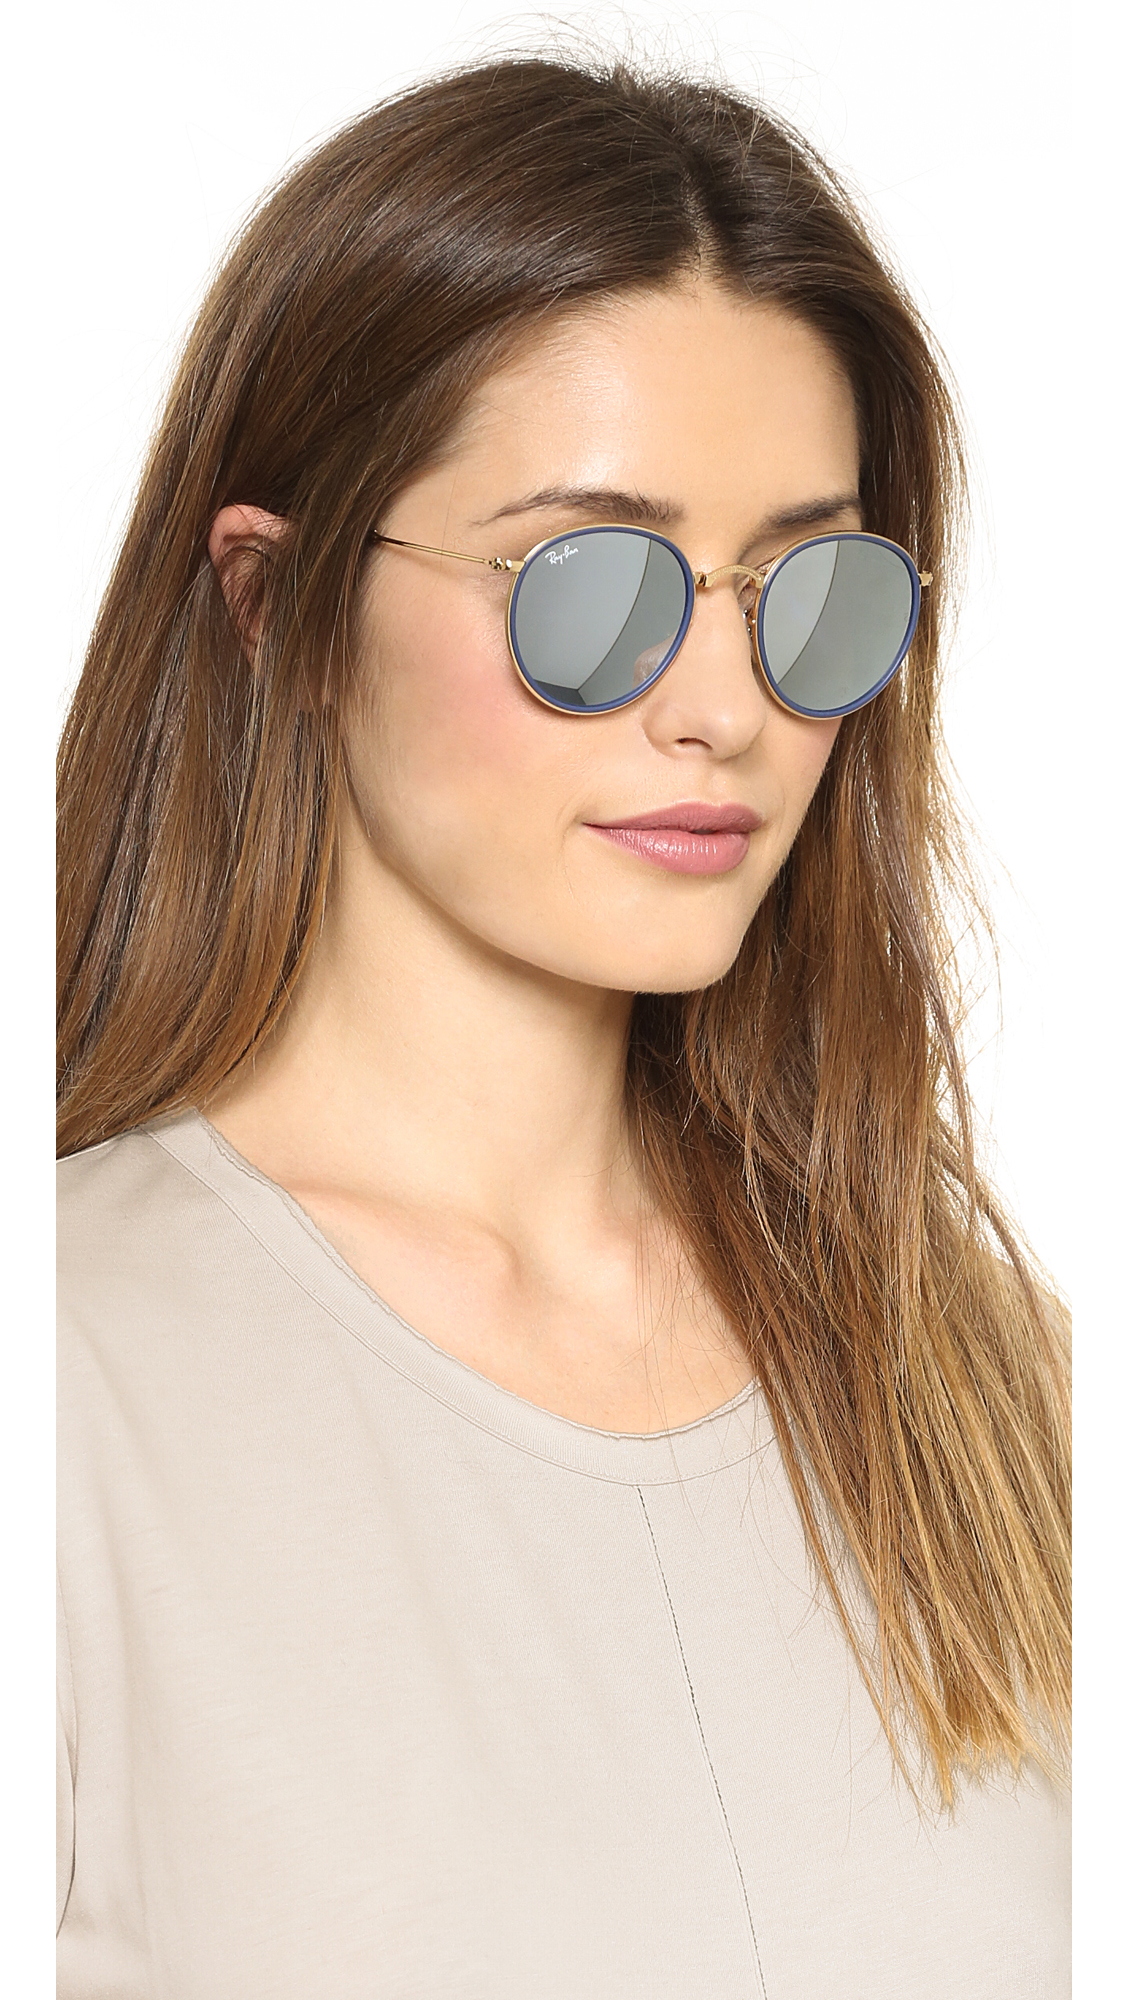 mirror sunglasses for women  Ray-Ban Mirrored Round Foldable Icon Sunglasses